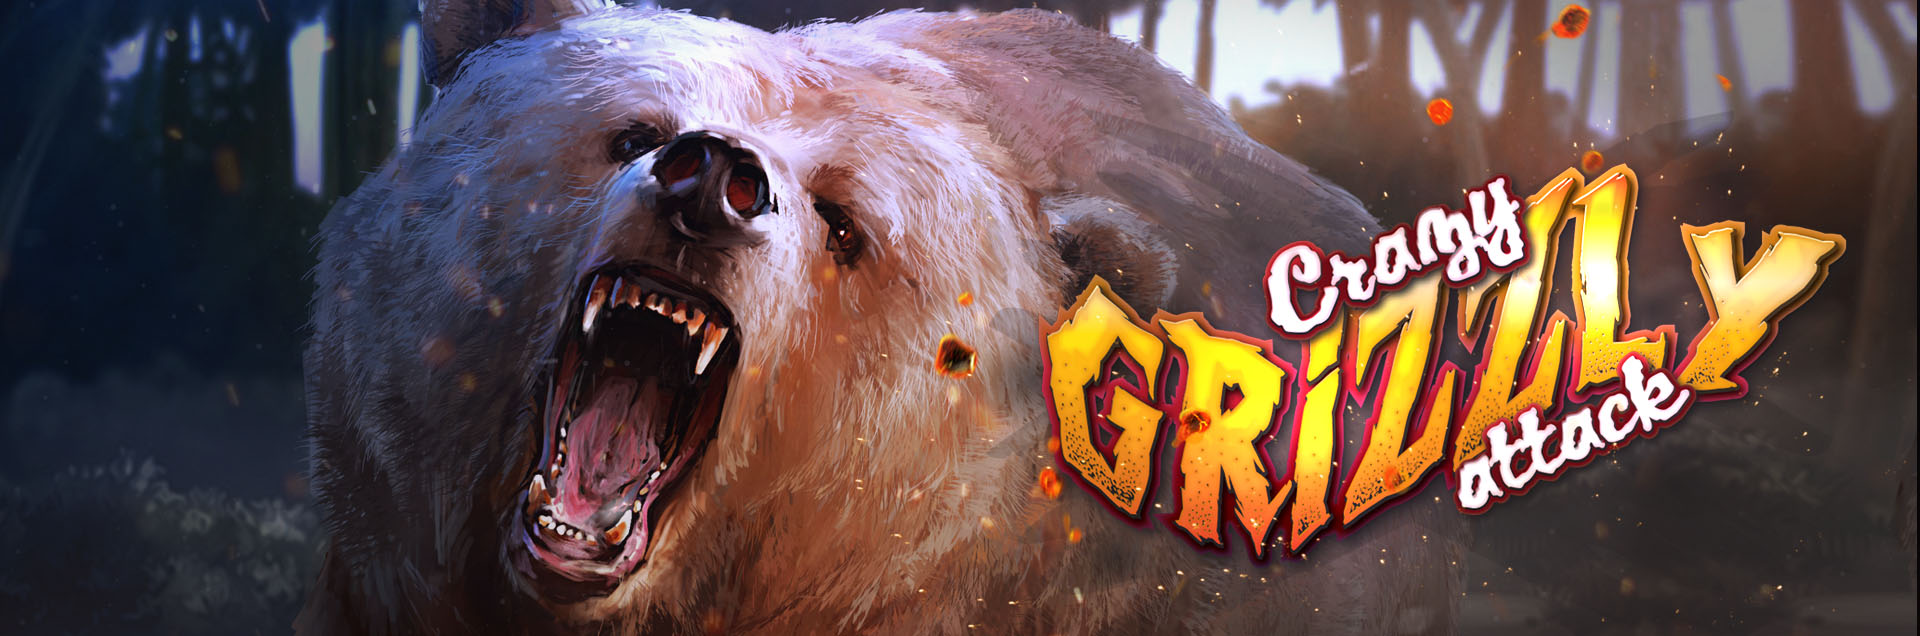 Crazzy grizzly